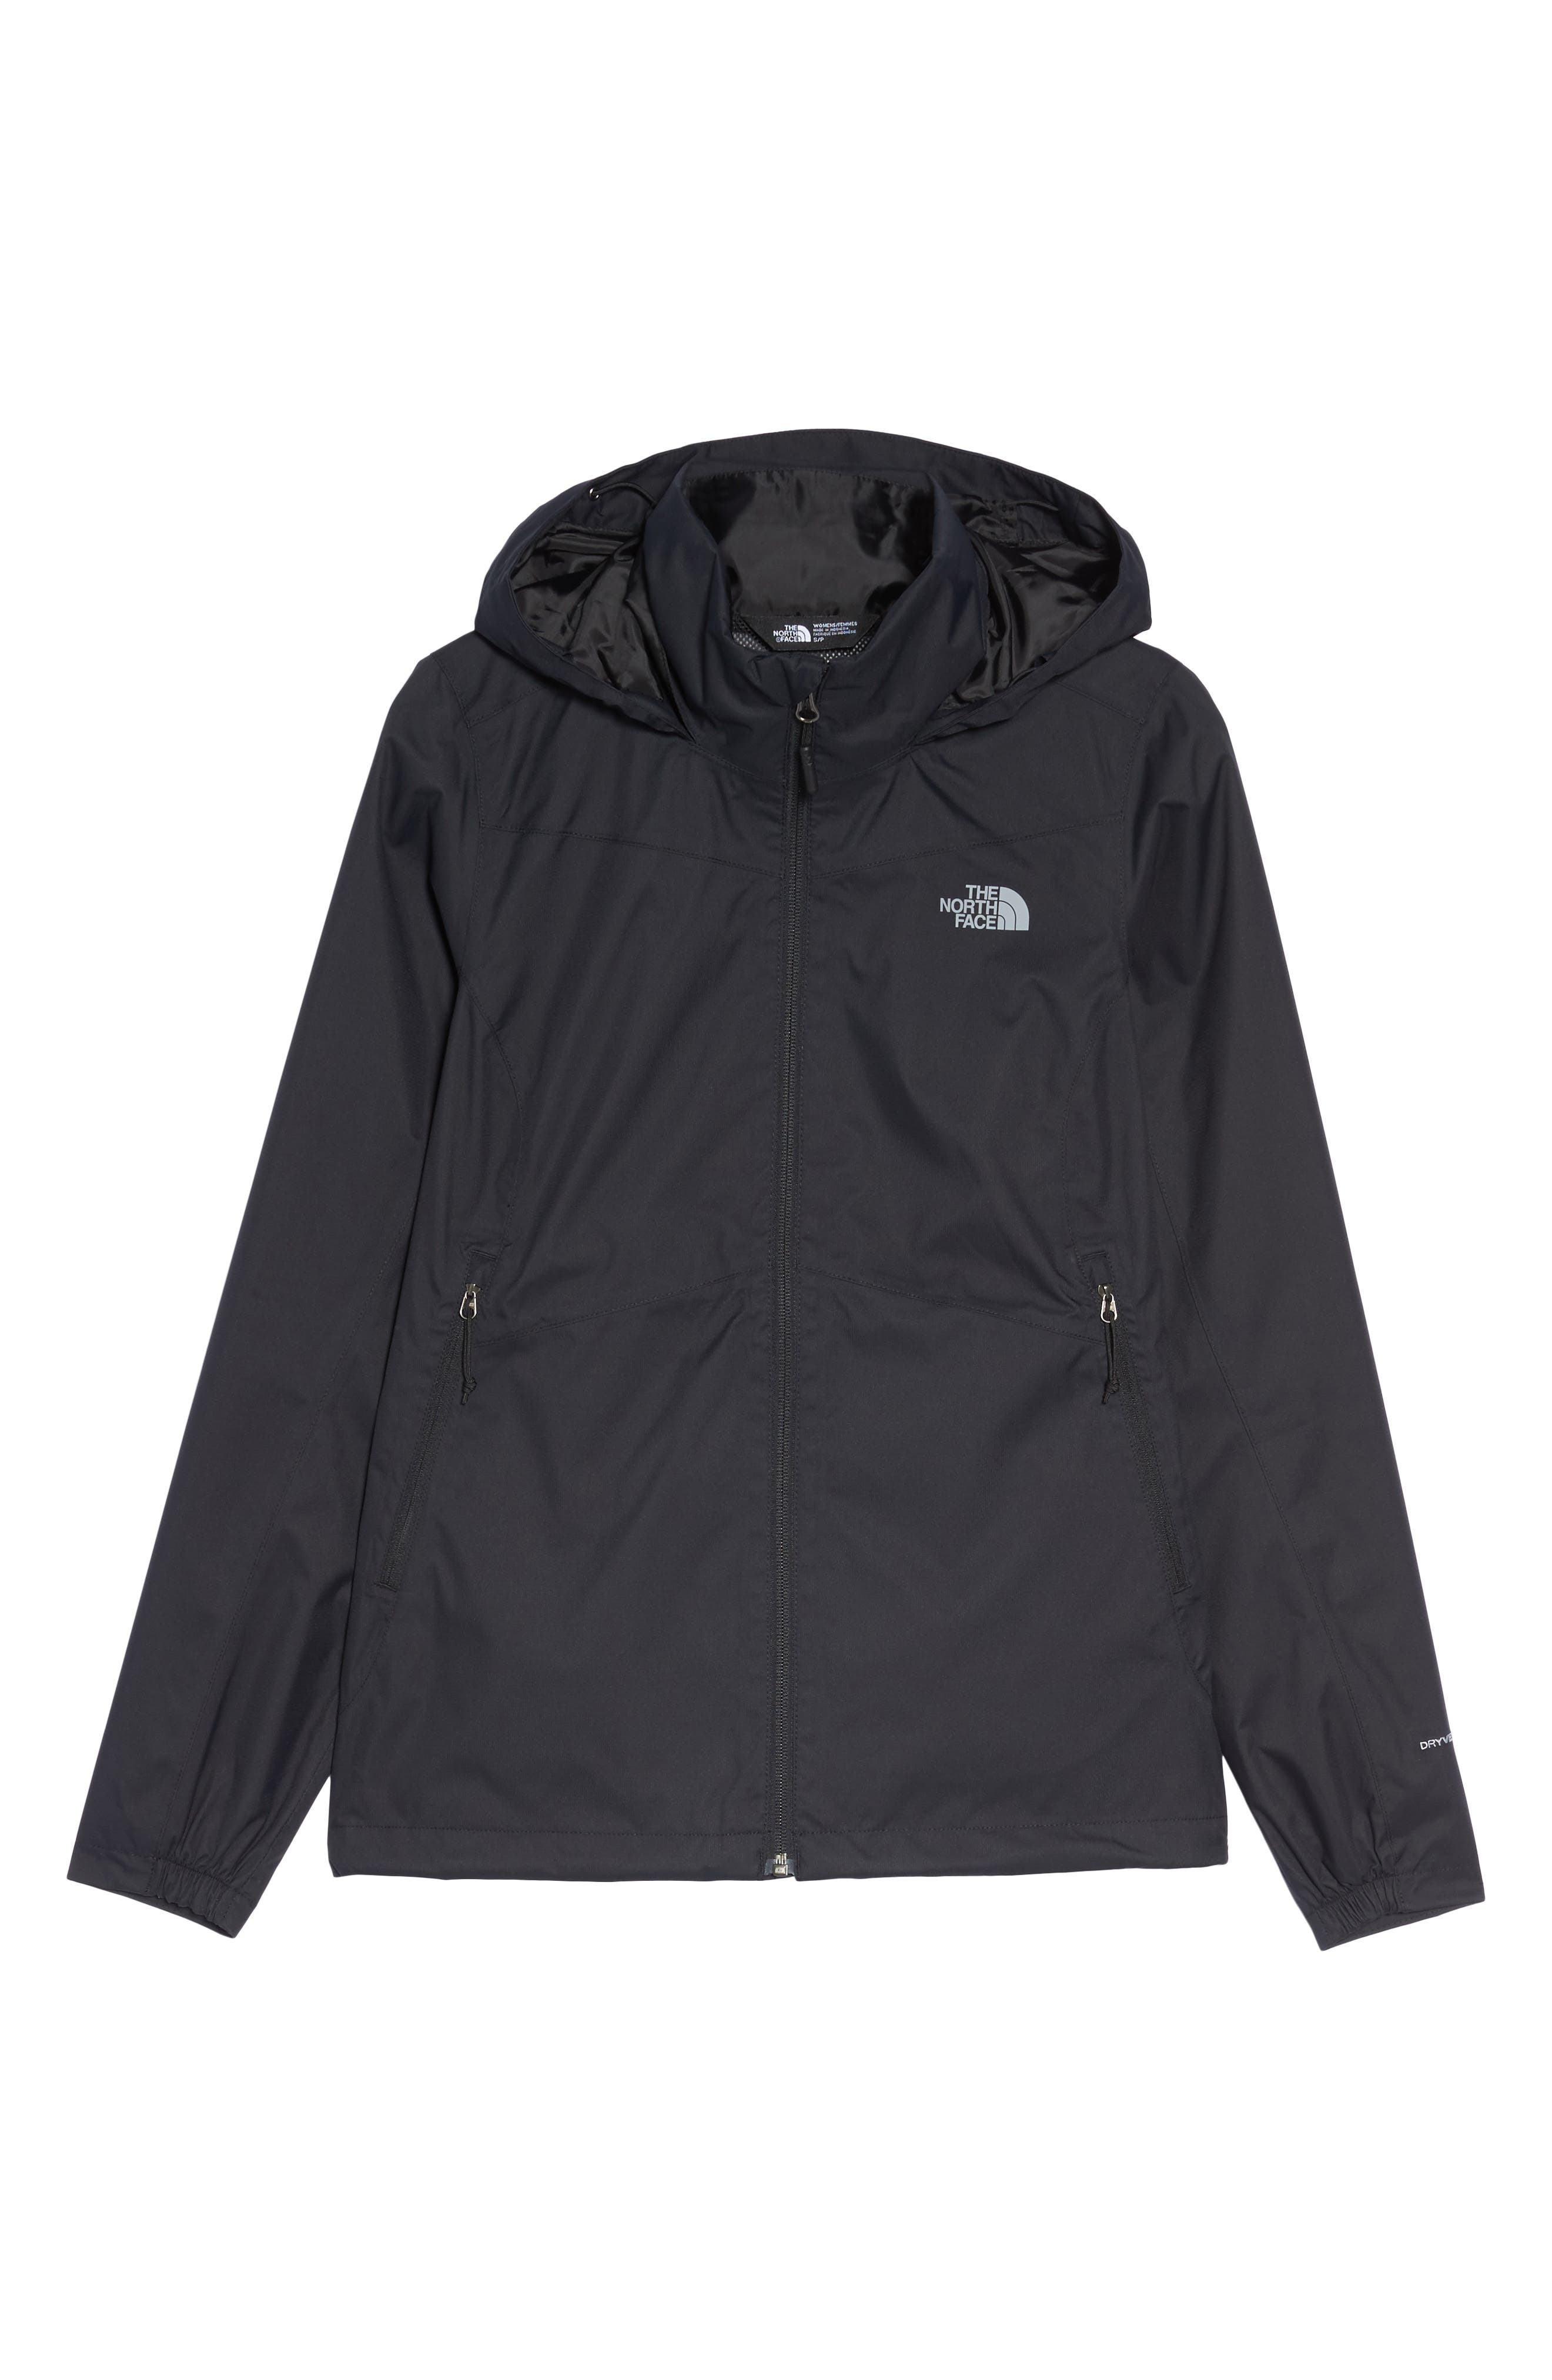 THE NORTH FACE, Resolve Plus Waterproof Jacket, Alternate thumbnail 6, color, TNF BLACK